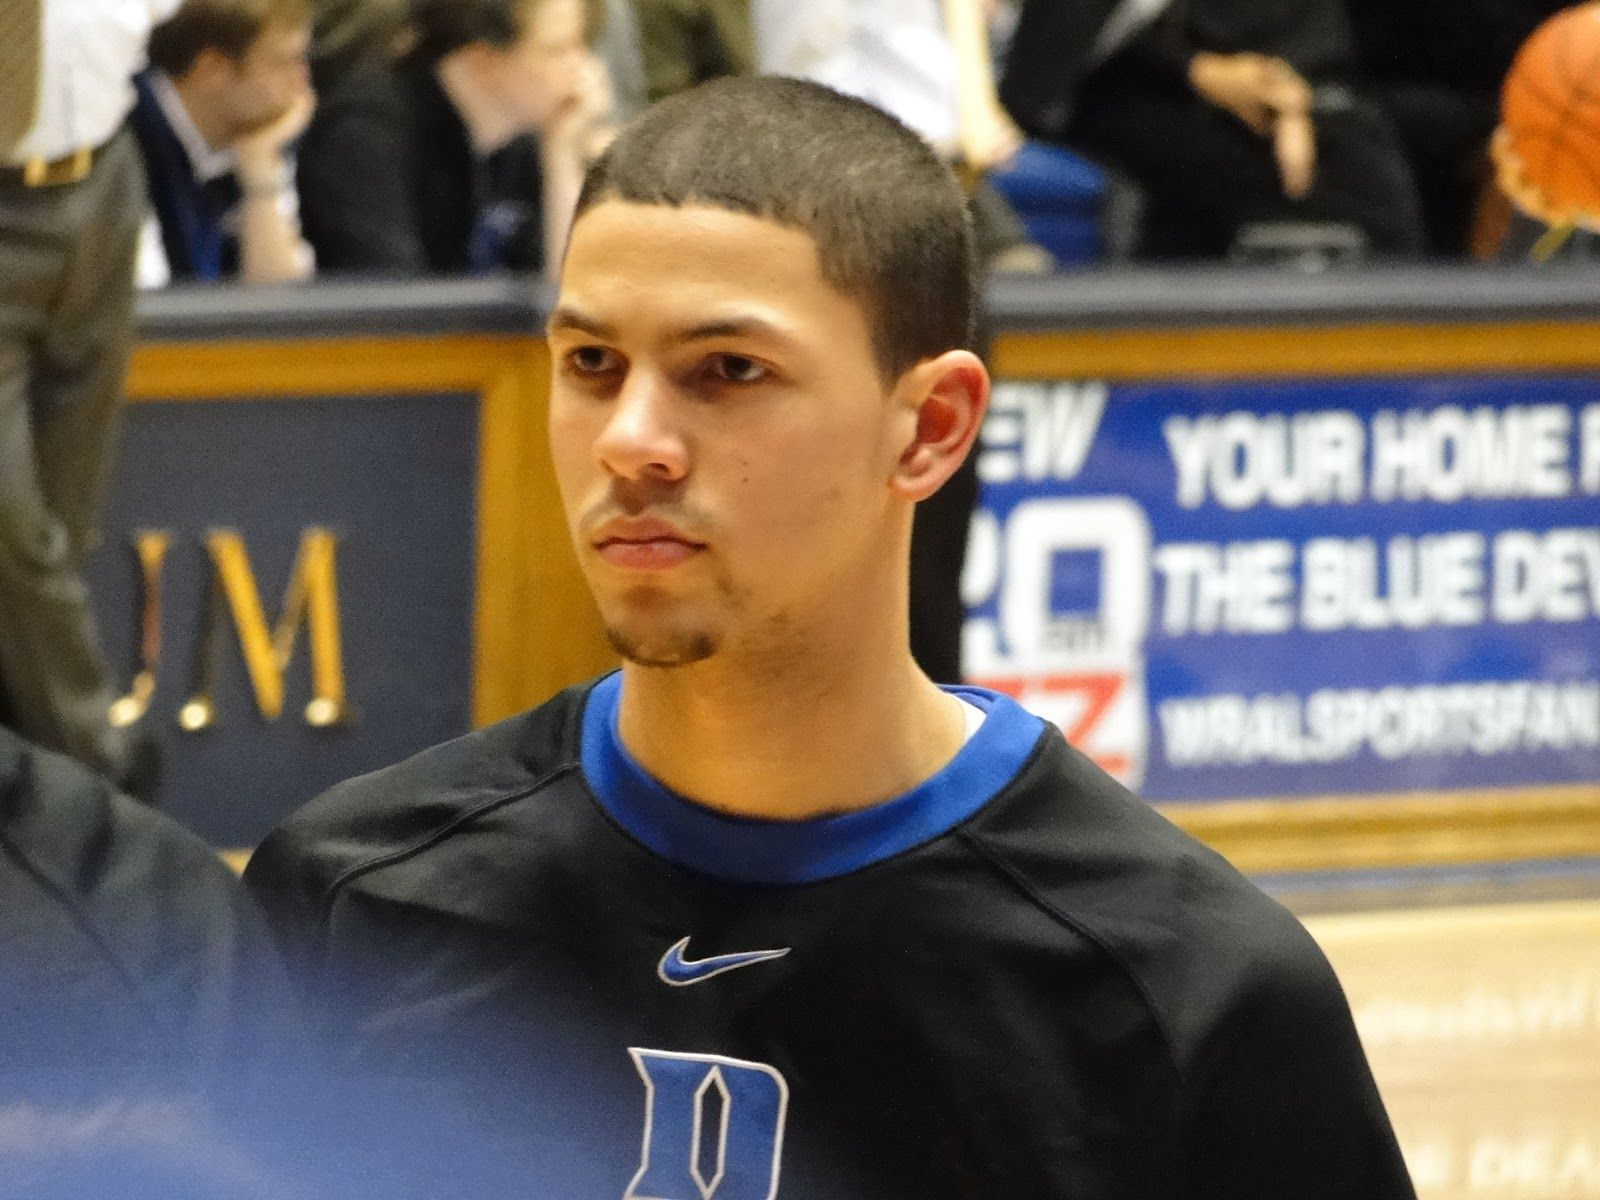 All About Sports: Austin Rivers Profile And Nice Images Gallery